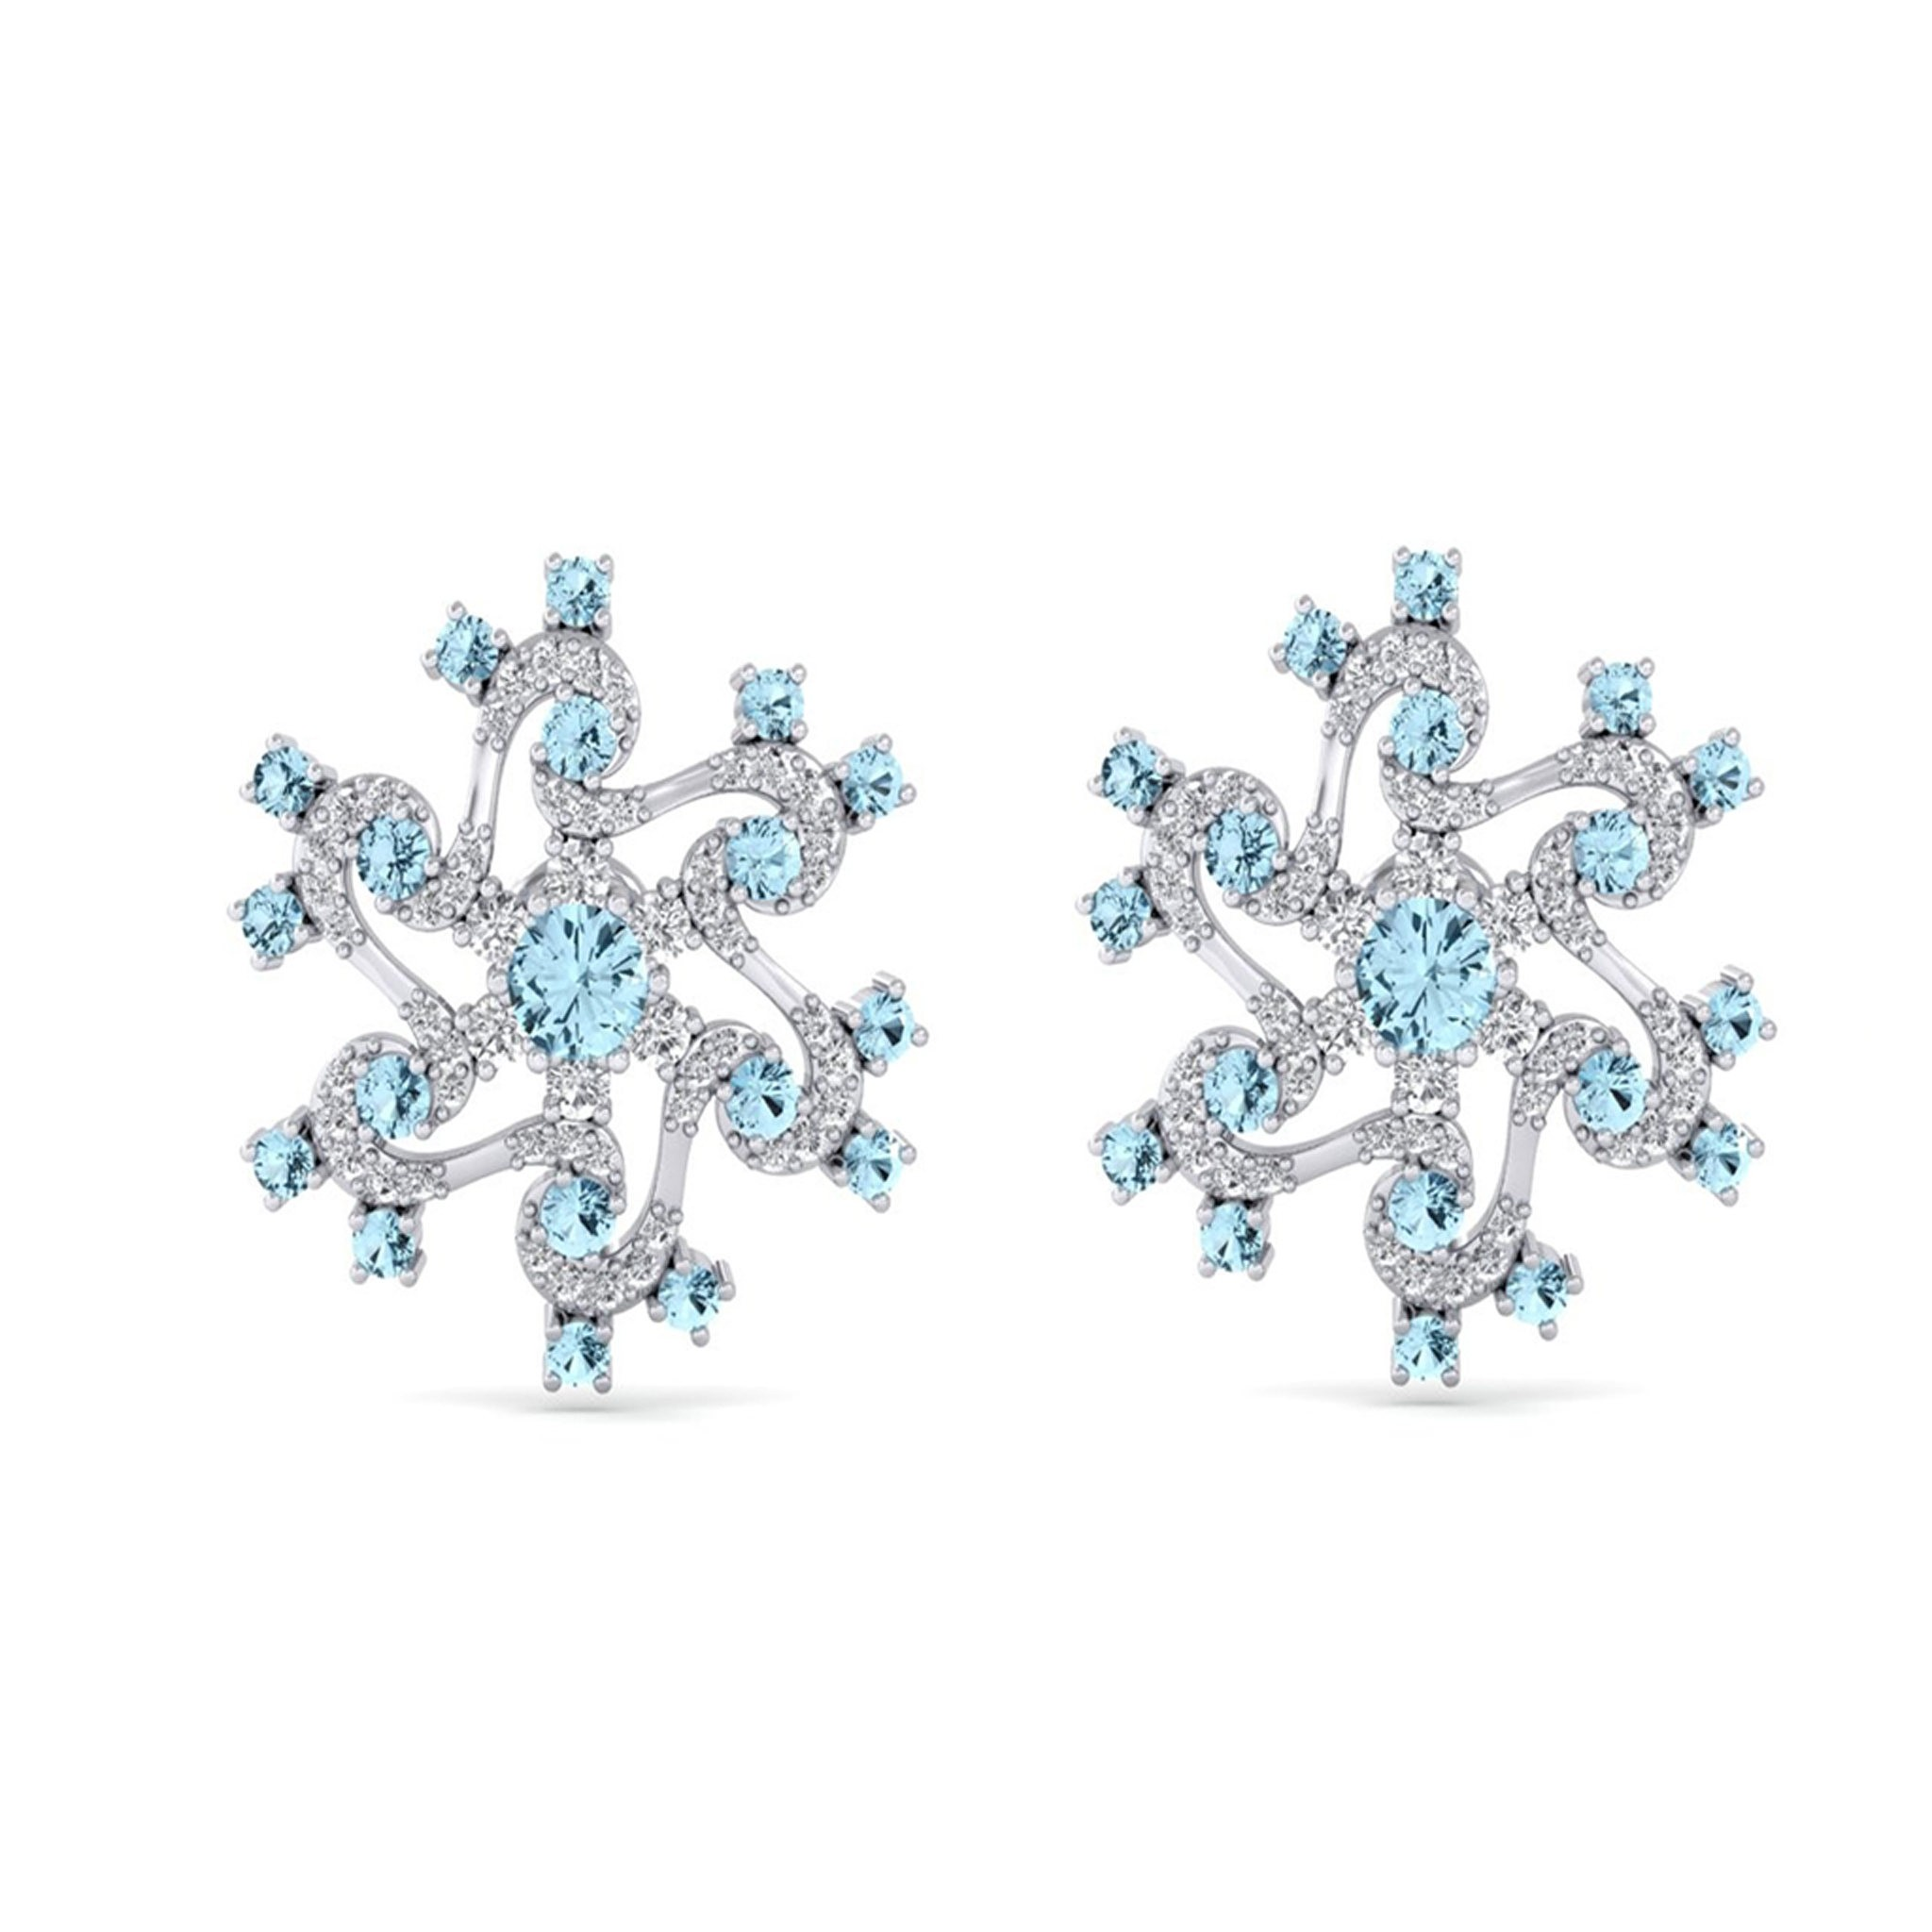 Diamond Earrings with Blue Gemstones